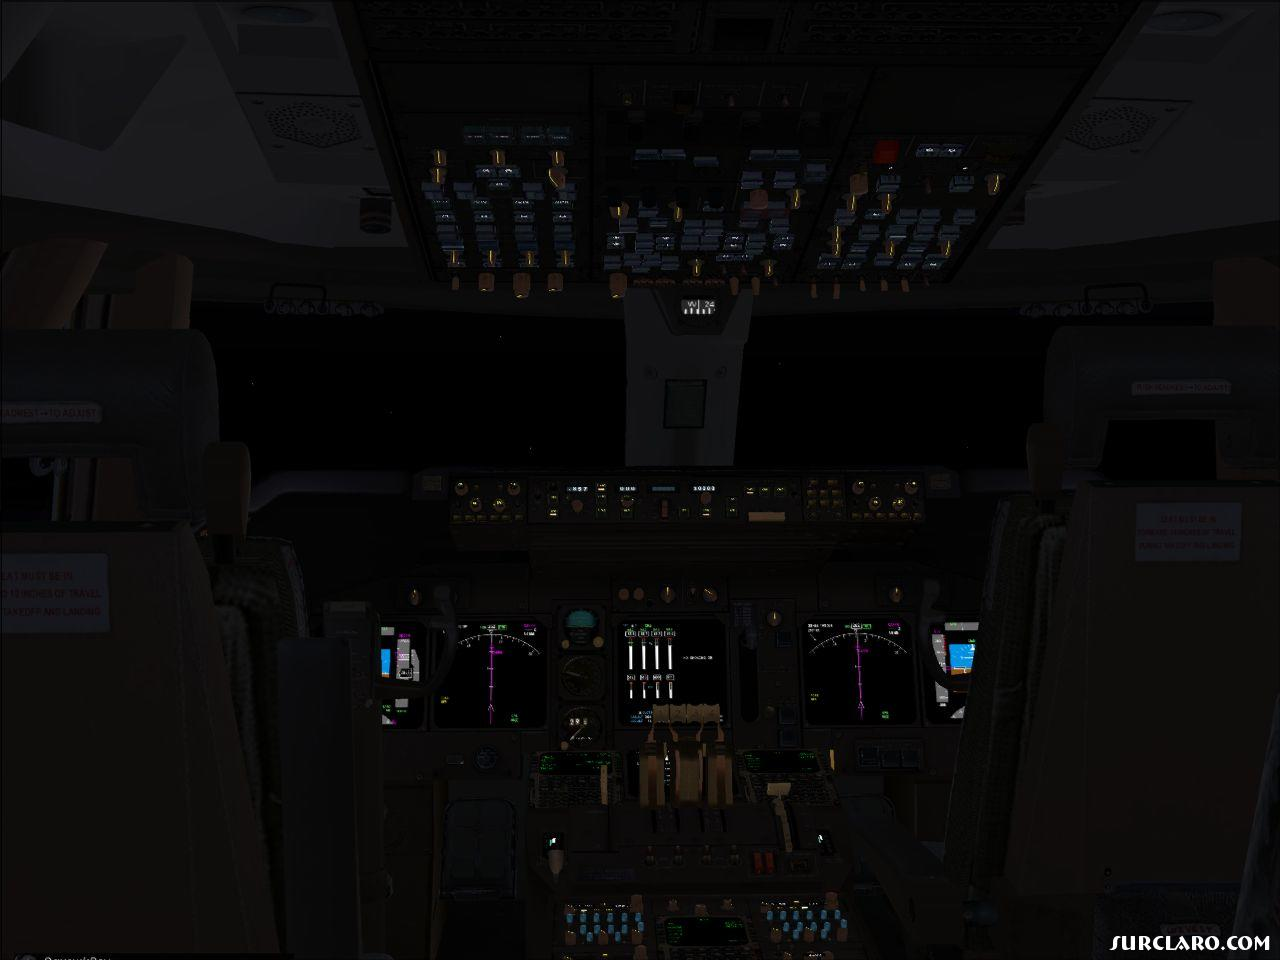 flight deck for the PMDG 747-400. - Photo 15097